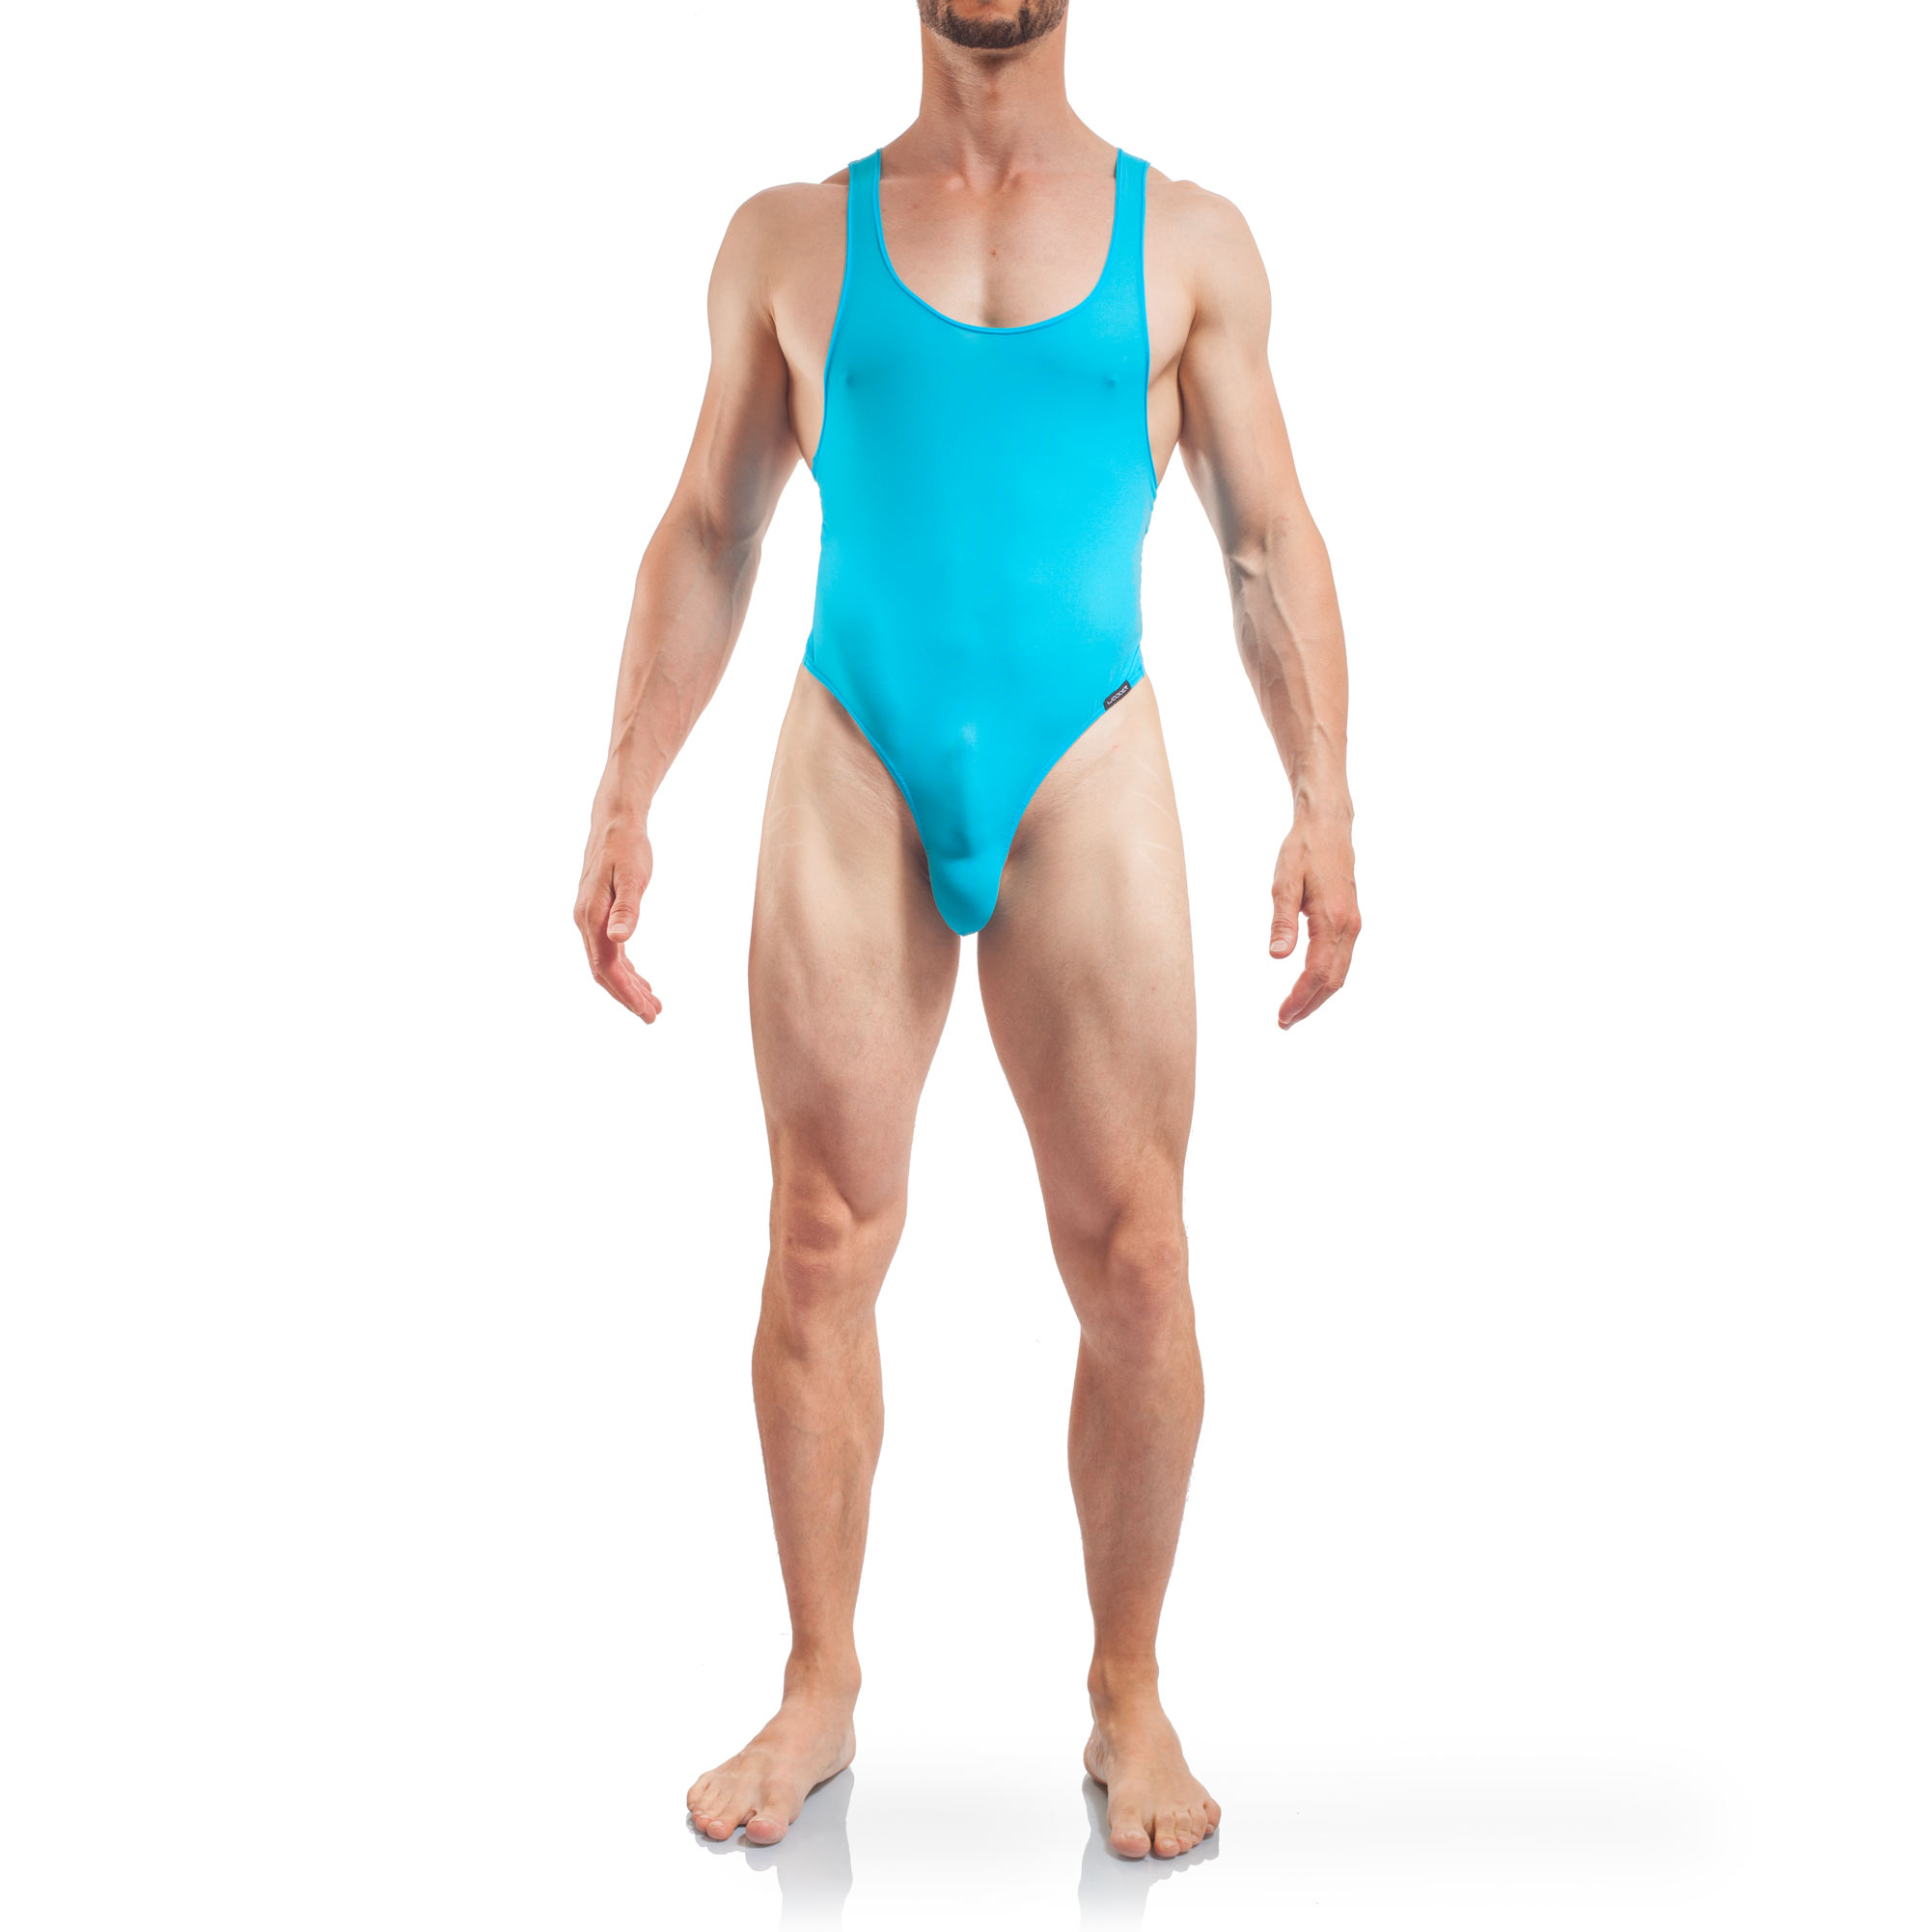 Body Herren Tangabody, Jumpsuite, Eisblau, Basic Body Men, Stringbody, Männer Badeanzug